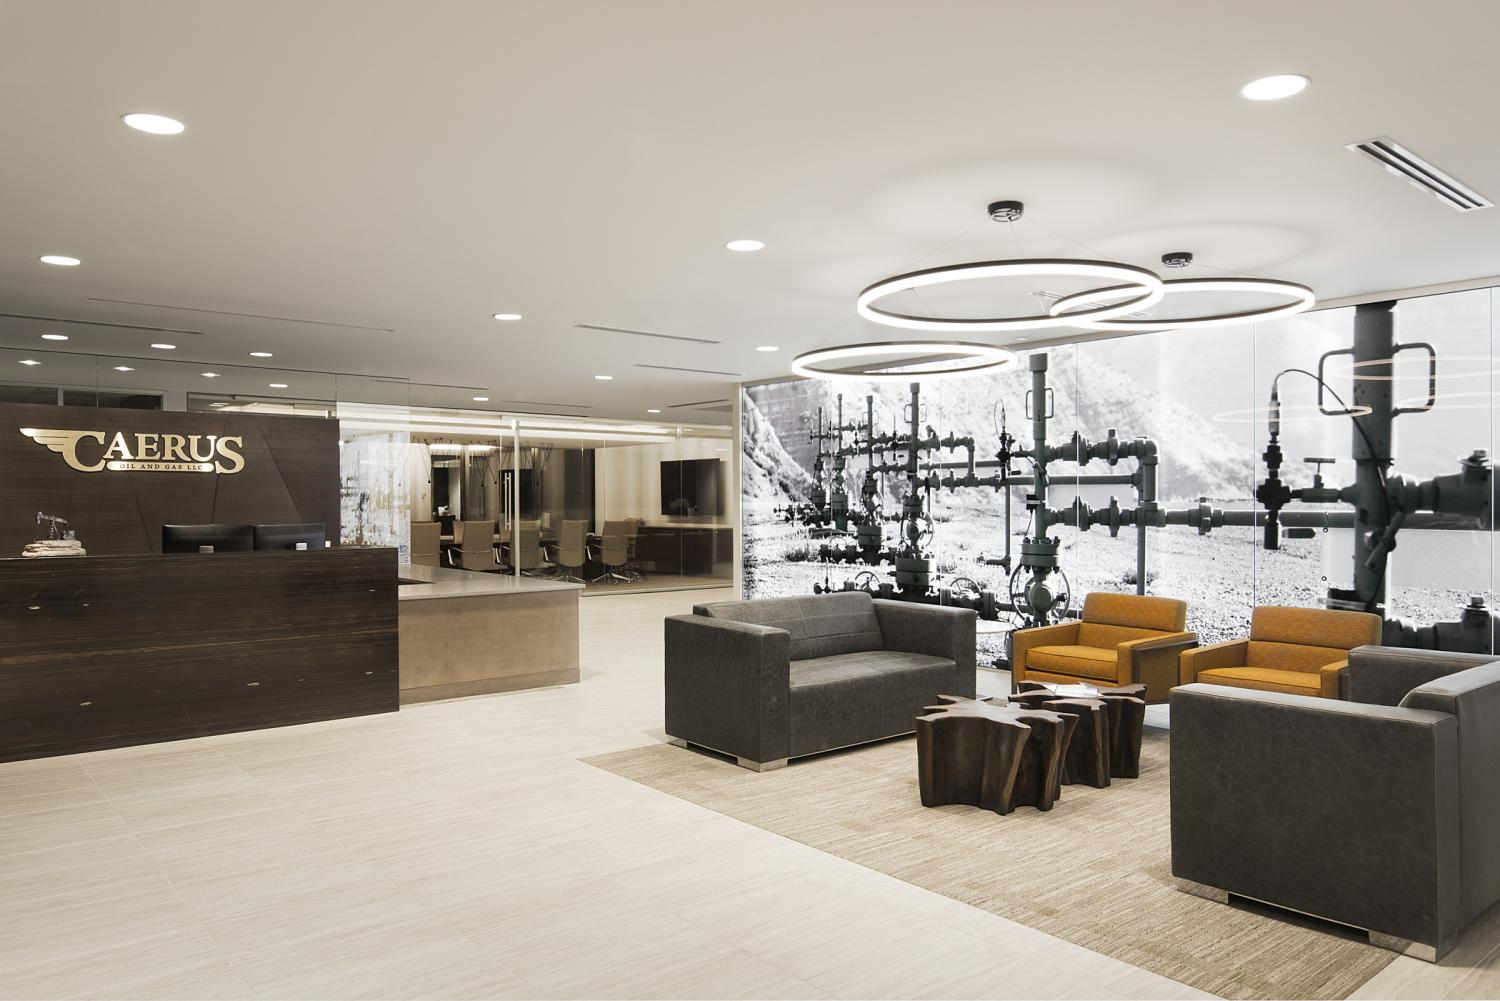 Caerus Oil and Gas Reception Area Commercial Construction Denver Colorado